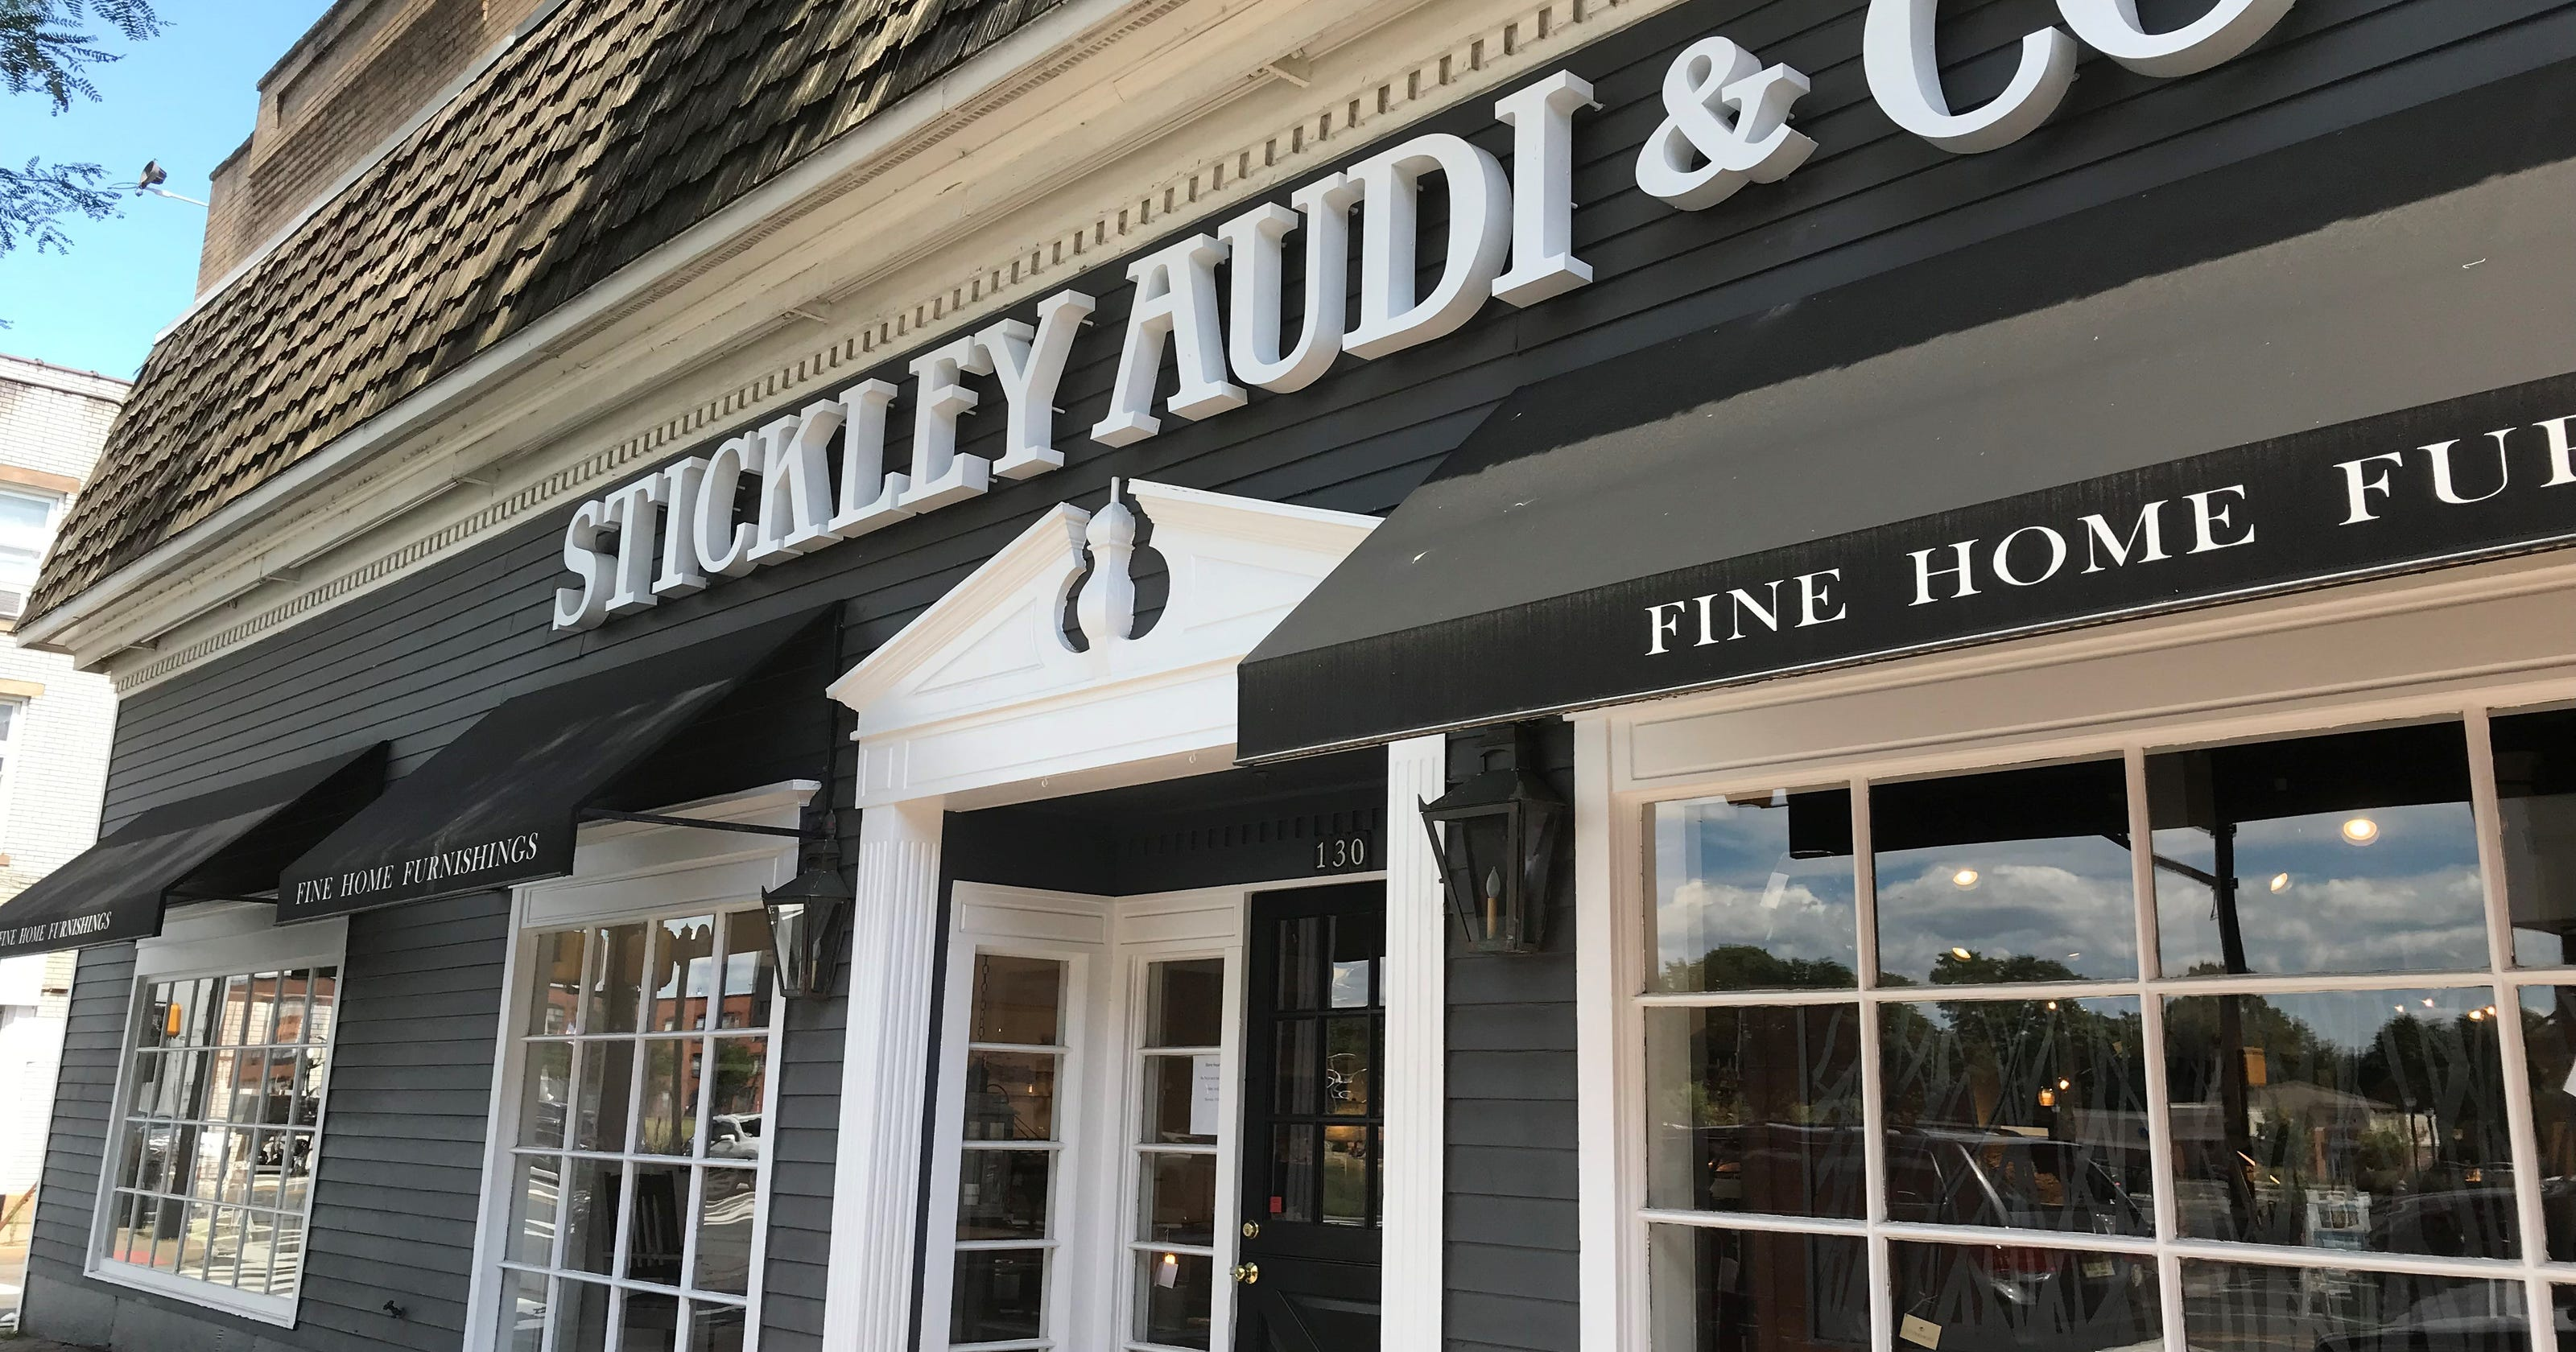 Stickley, Audi & Co. Furniture Store Opens In Somerville